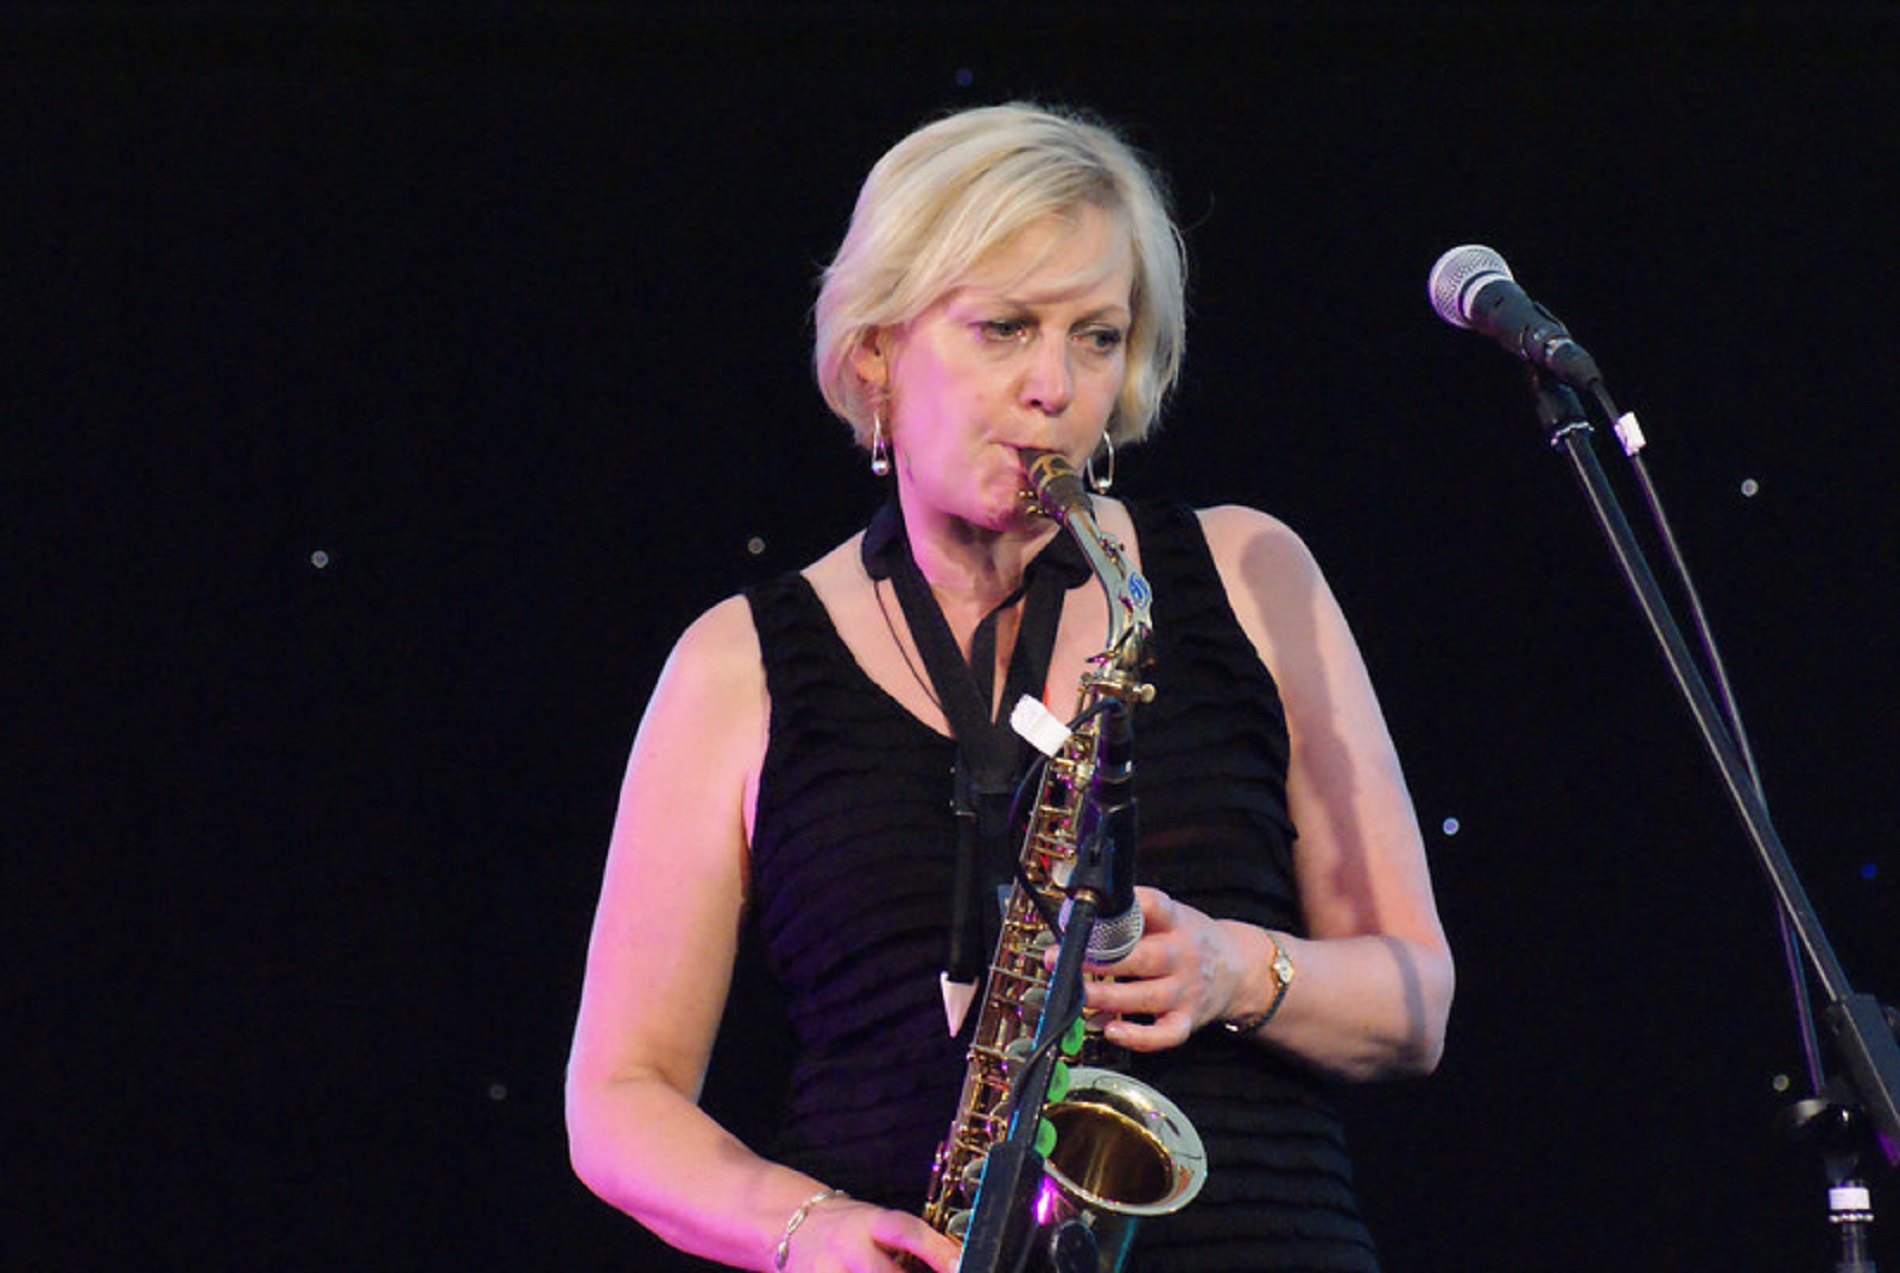 JLR Interview with Saxophonist Clare Hirst